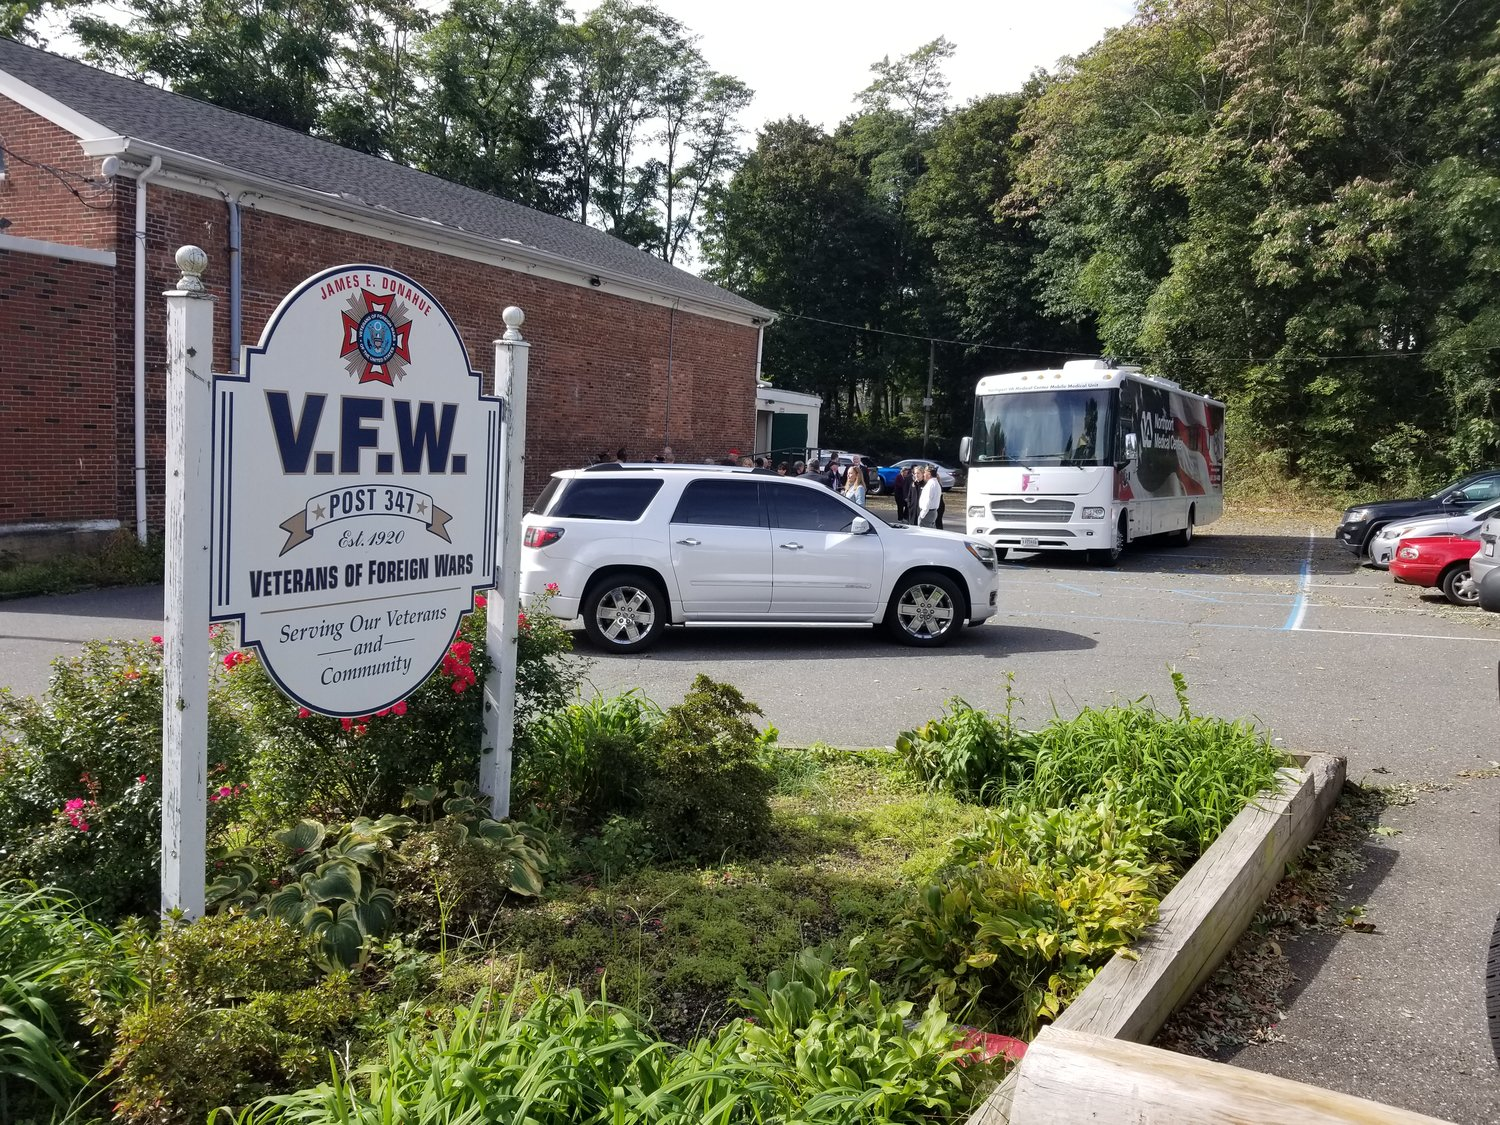 The mobile unit will be parked in the lot of the Glen Cove VFW Post 347.